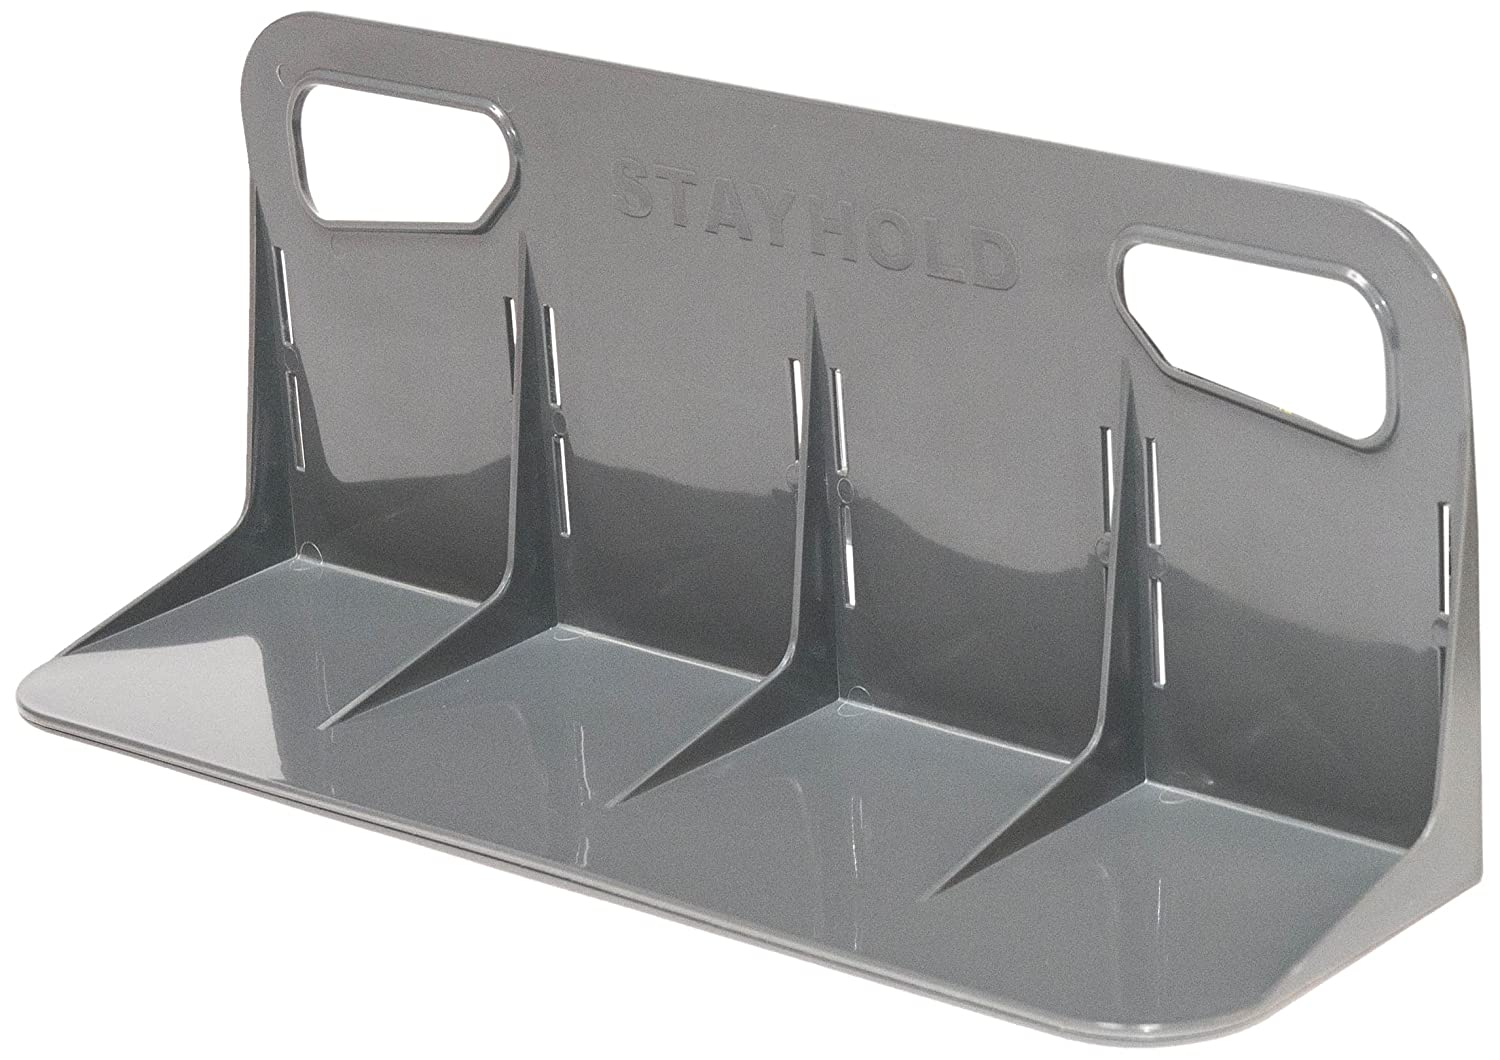 STAYHOLD Car Trunk Organizer, Adapts to Hold Any Size or Shape Item | Sticks to Carpet with Hard Gripping VELCRO Brand Technology | Cars, Trucks, SUV, Minivan & Boats | Size L 2Pk, Classic | Gray STA-30036-USA